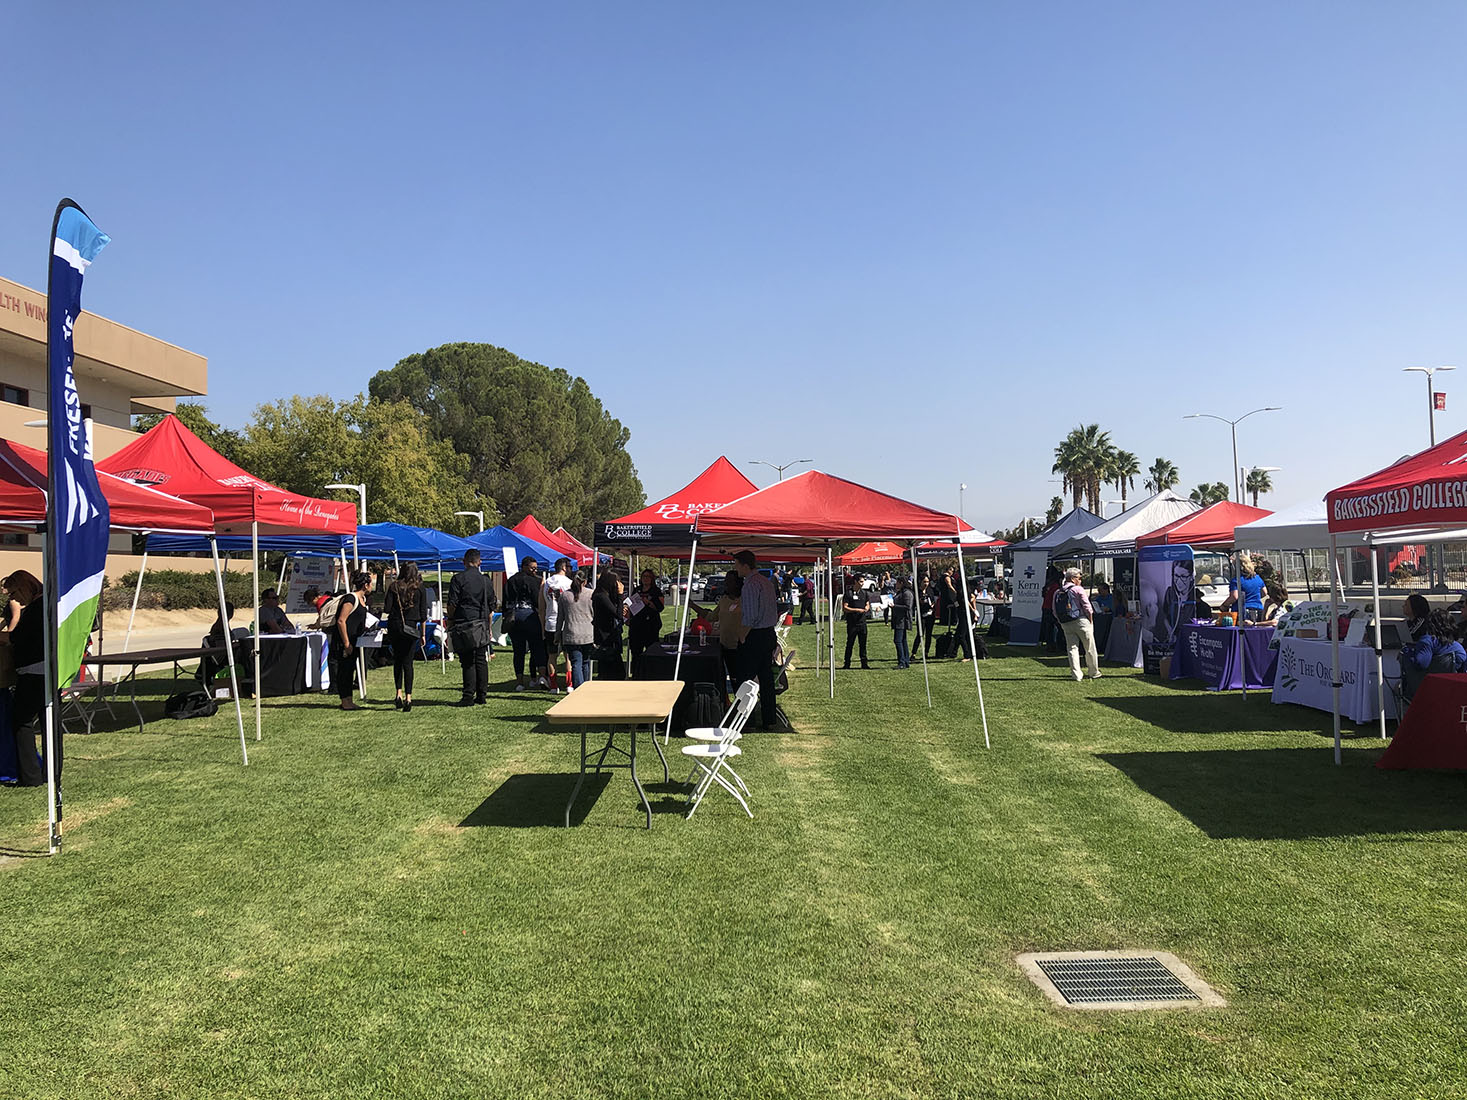 Hospitals in Kern County have attributed their interest in hiring Bakersfield College students to the Healthcare Fair.